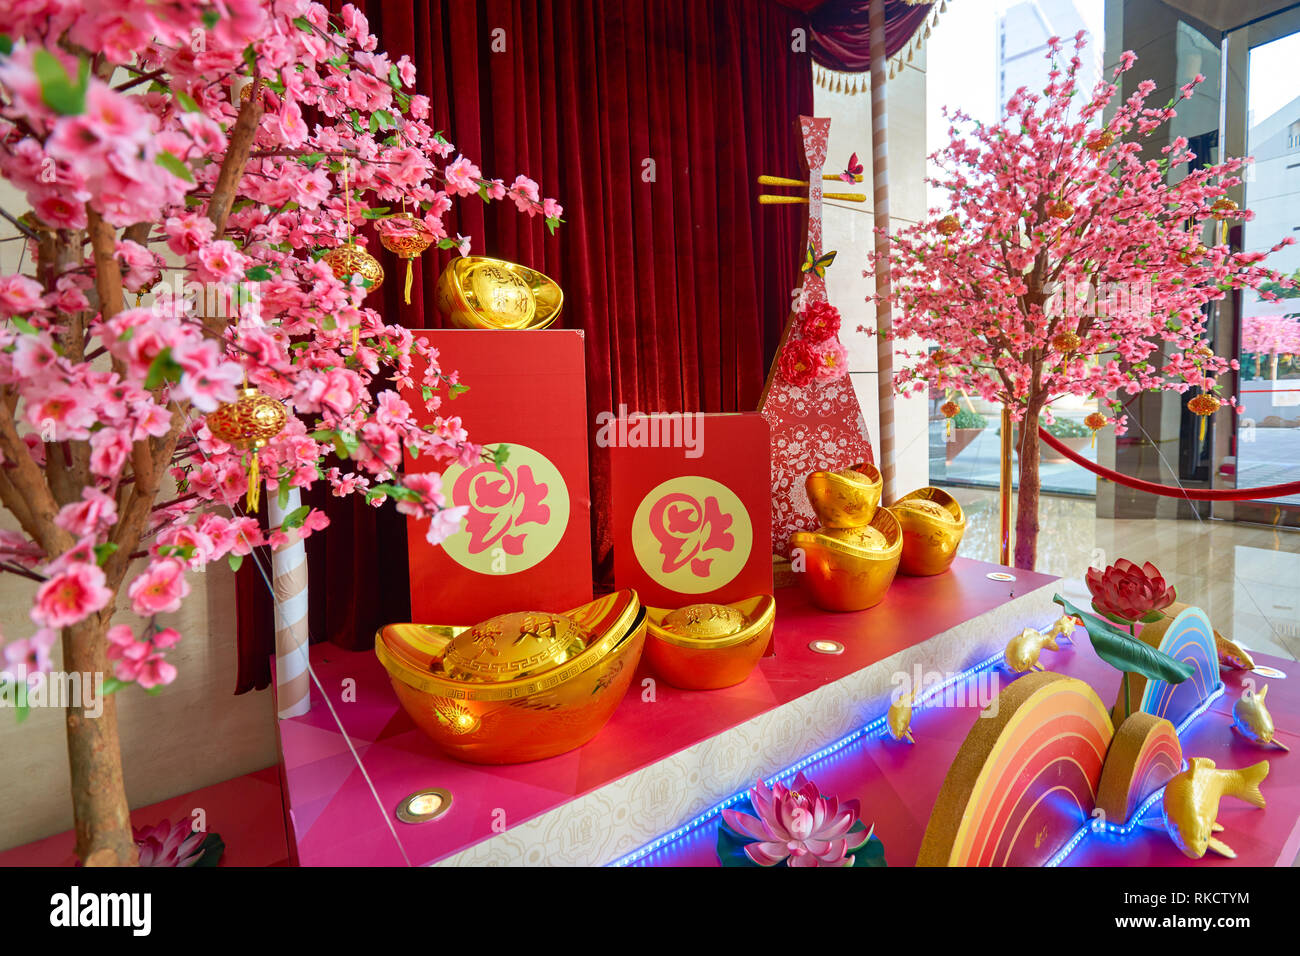 SHENZHEN, CHINA - FEBRUARY 05, 2016: Chinese New Year decorations at KK100. The KK100 is a supertall skyscraper in Shenzhen, Guangdong province, China - Stock Image